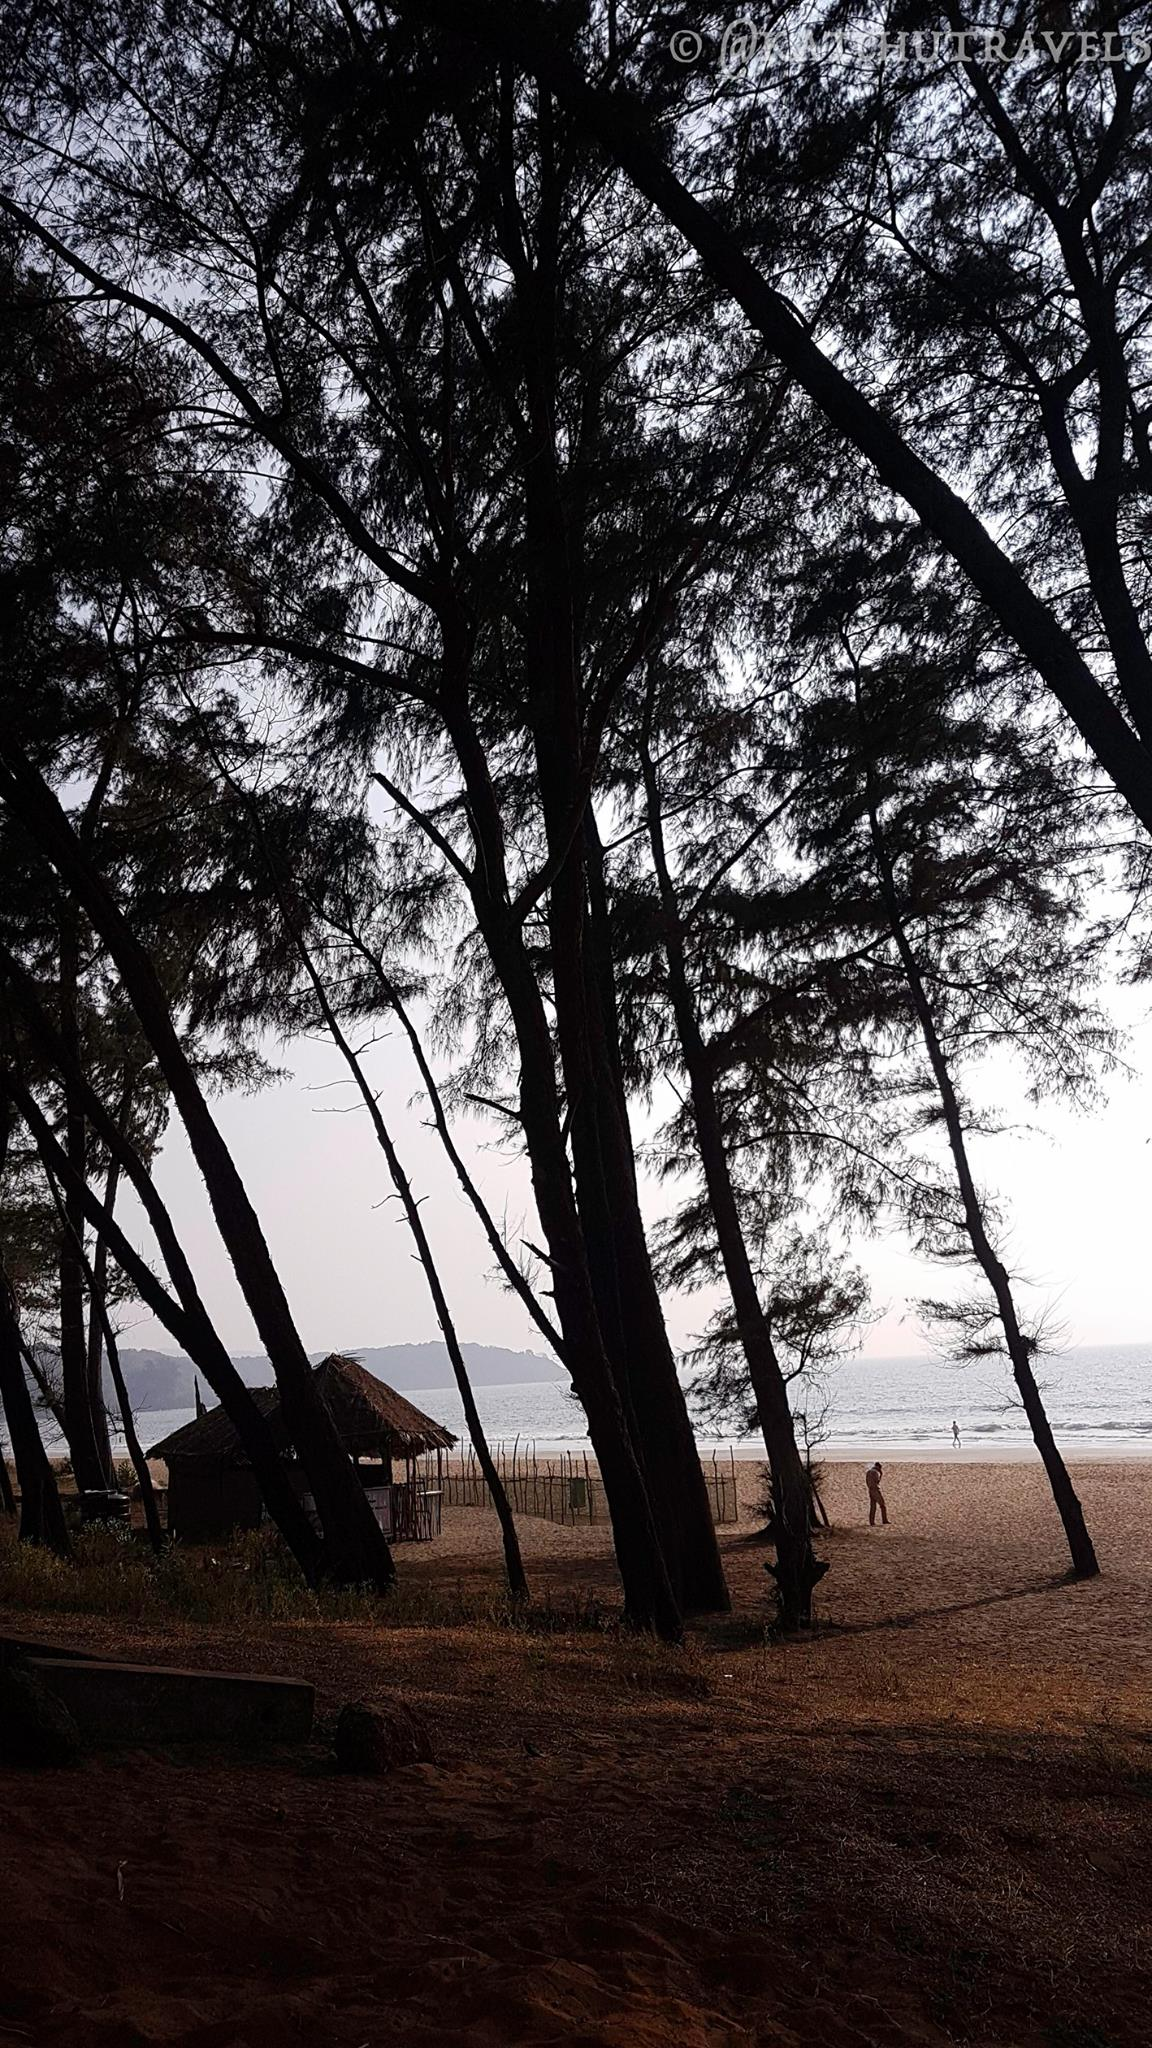 Galjibaga Beach-7 km's from Palolem Beach and 20 minutes away from bike